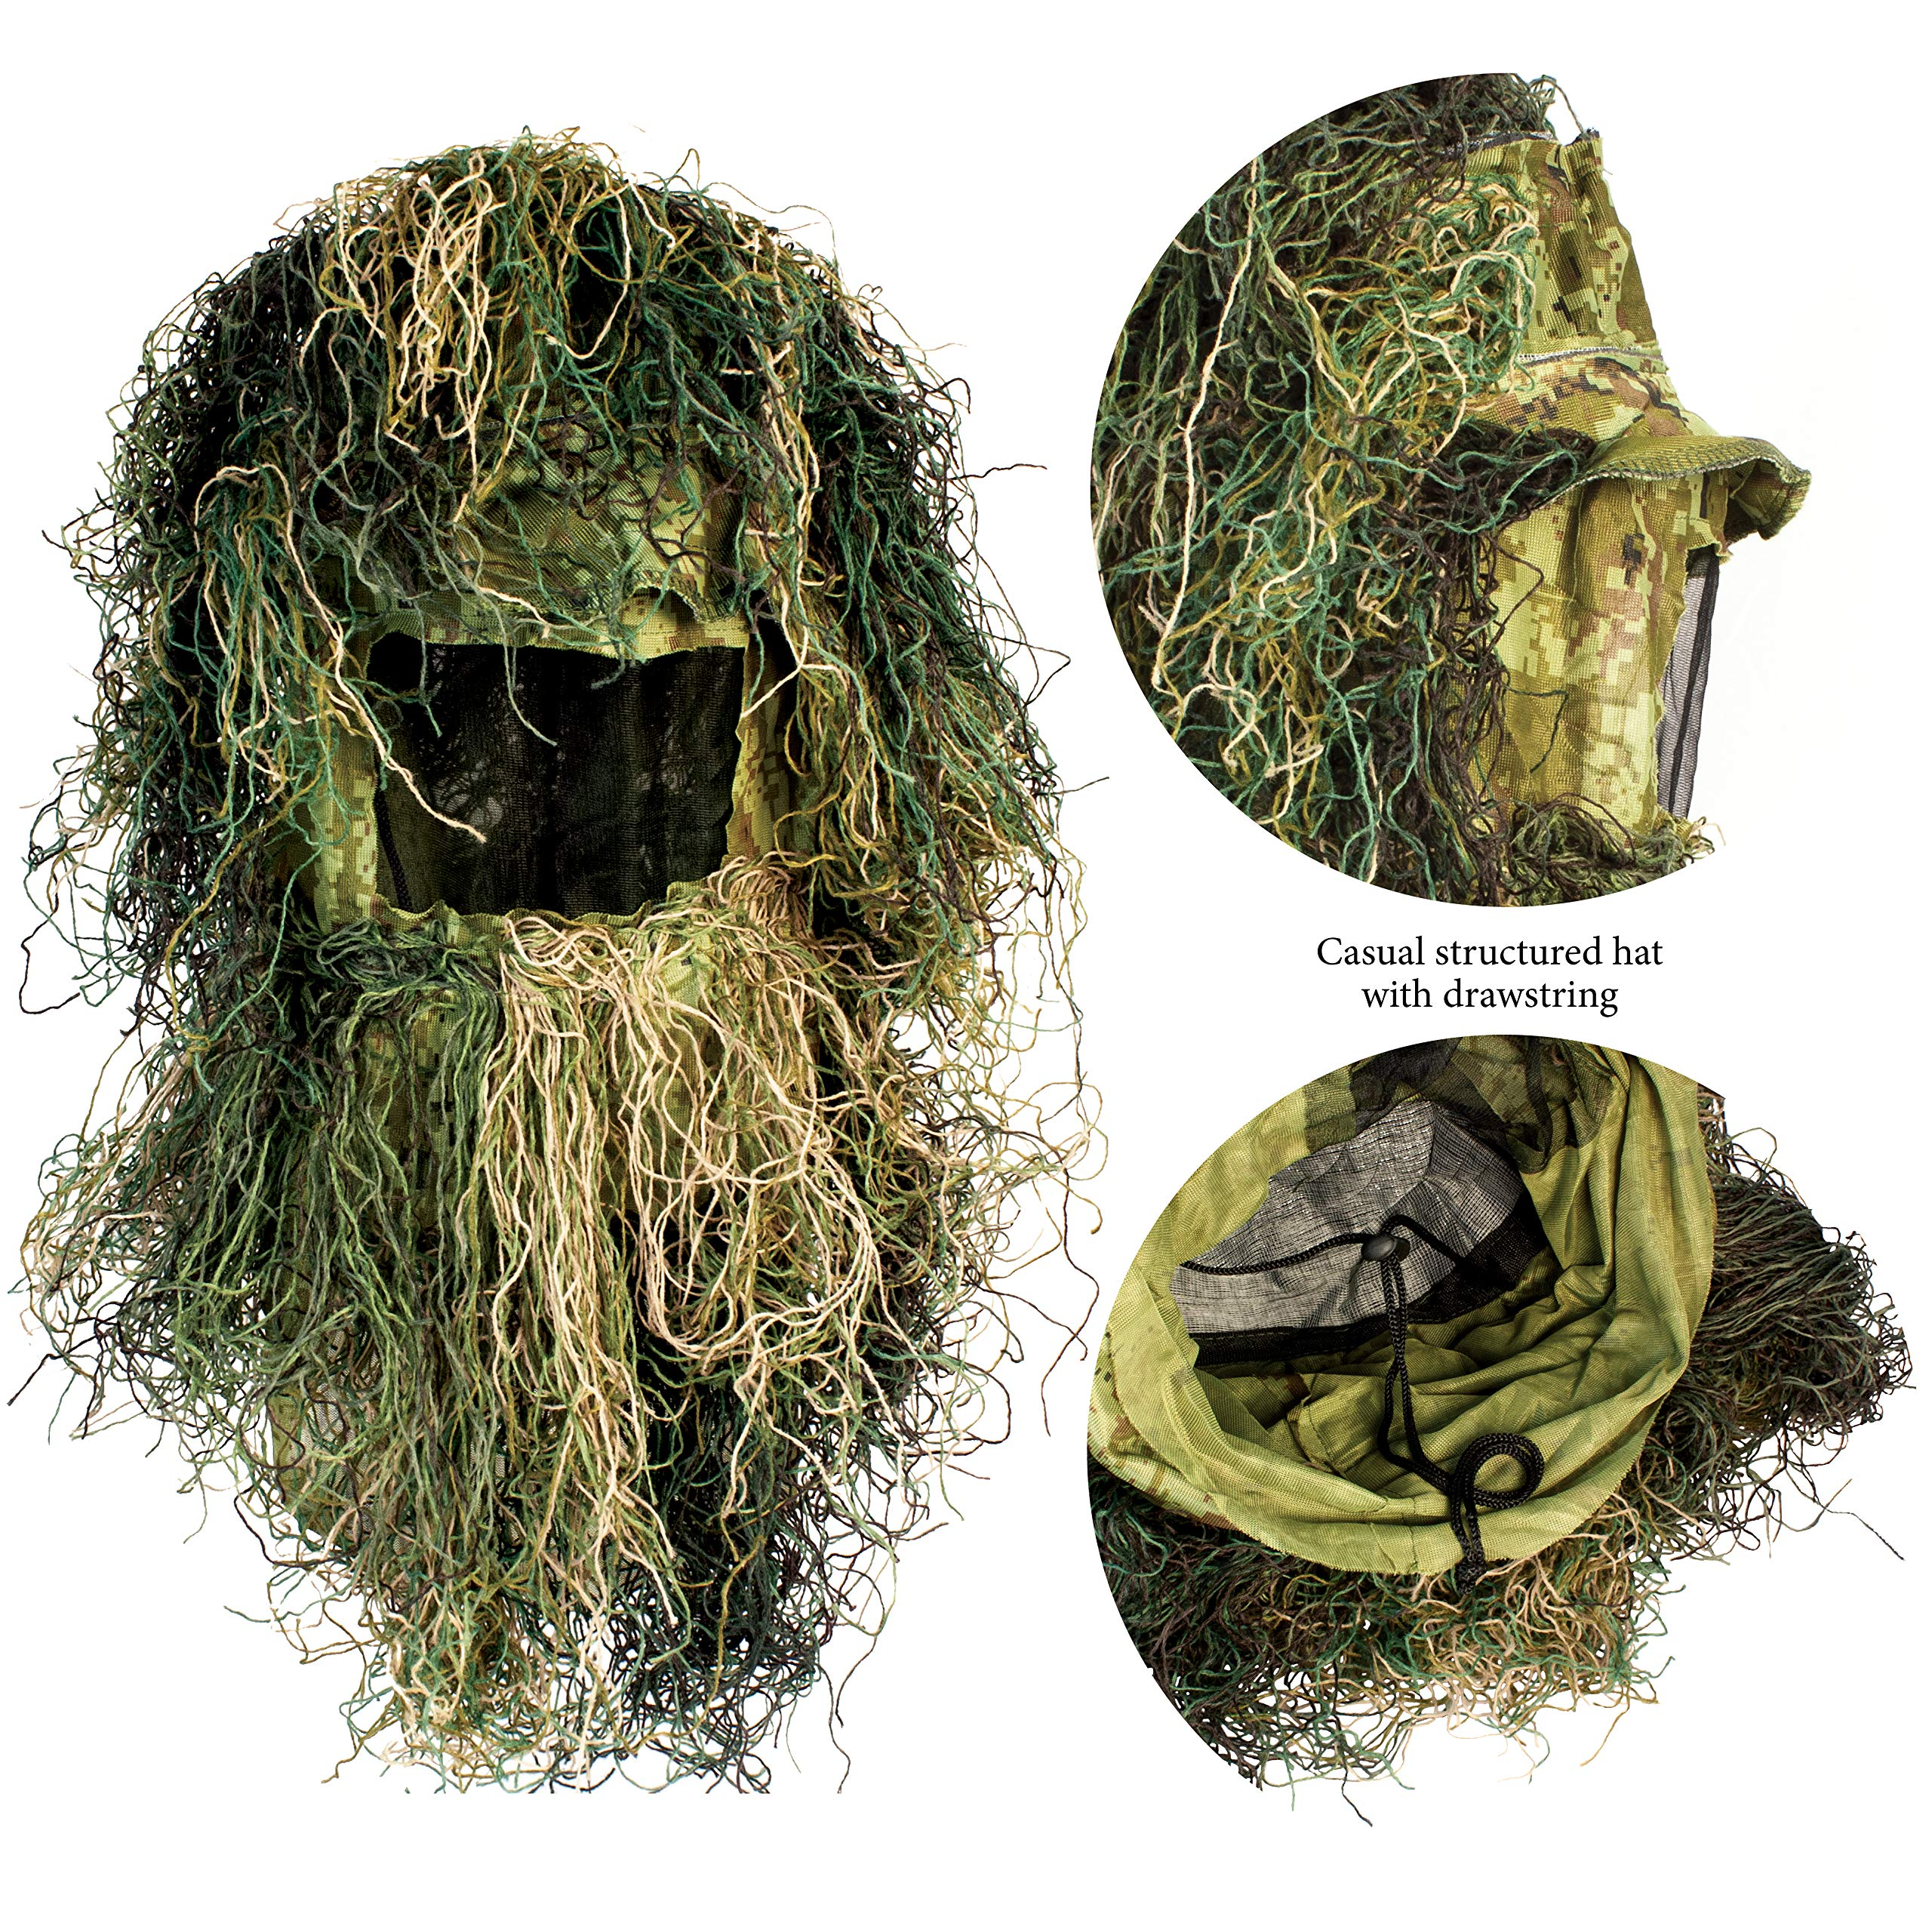 Red Rock Outdoor Gear - Ghillie Suit by Red Rock Outdoor Gear (Image #3)